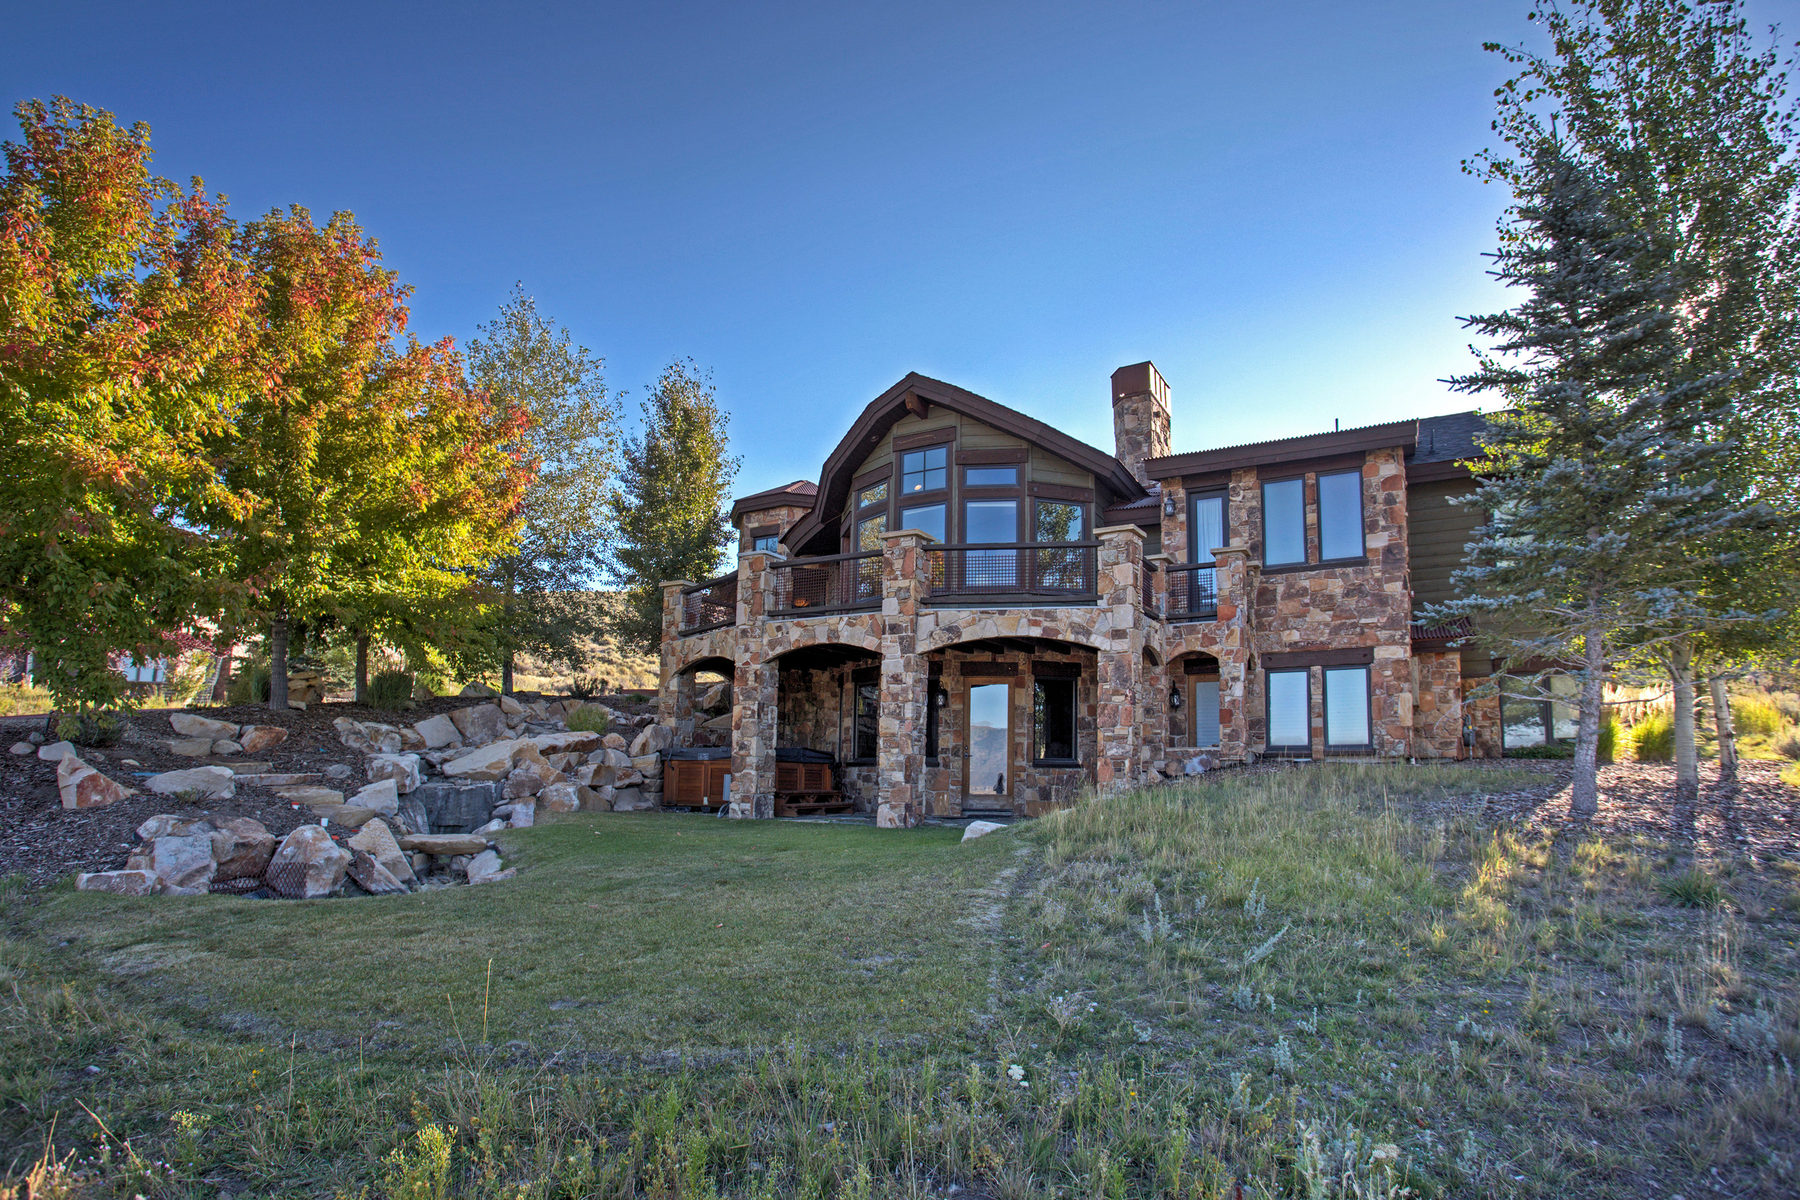 Single Family Home for Sale at Mountain Contemporary Home With Privacy And Ski Resort Vie 3382 Westview Trl #10 Park City, Utah 84098 United States